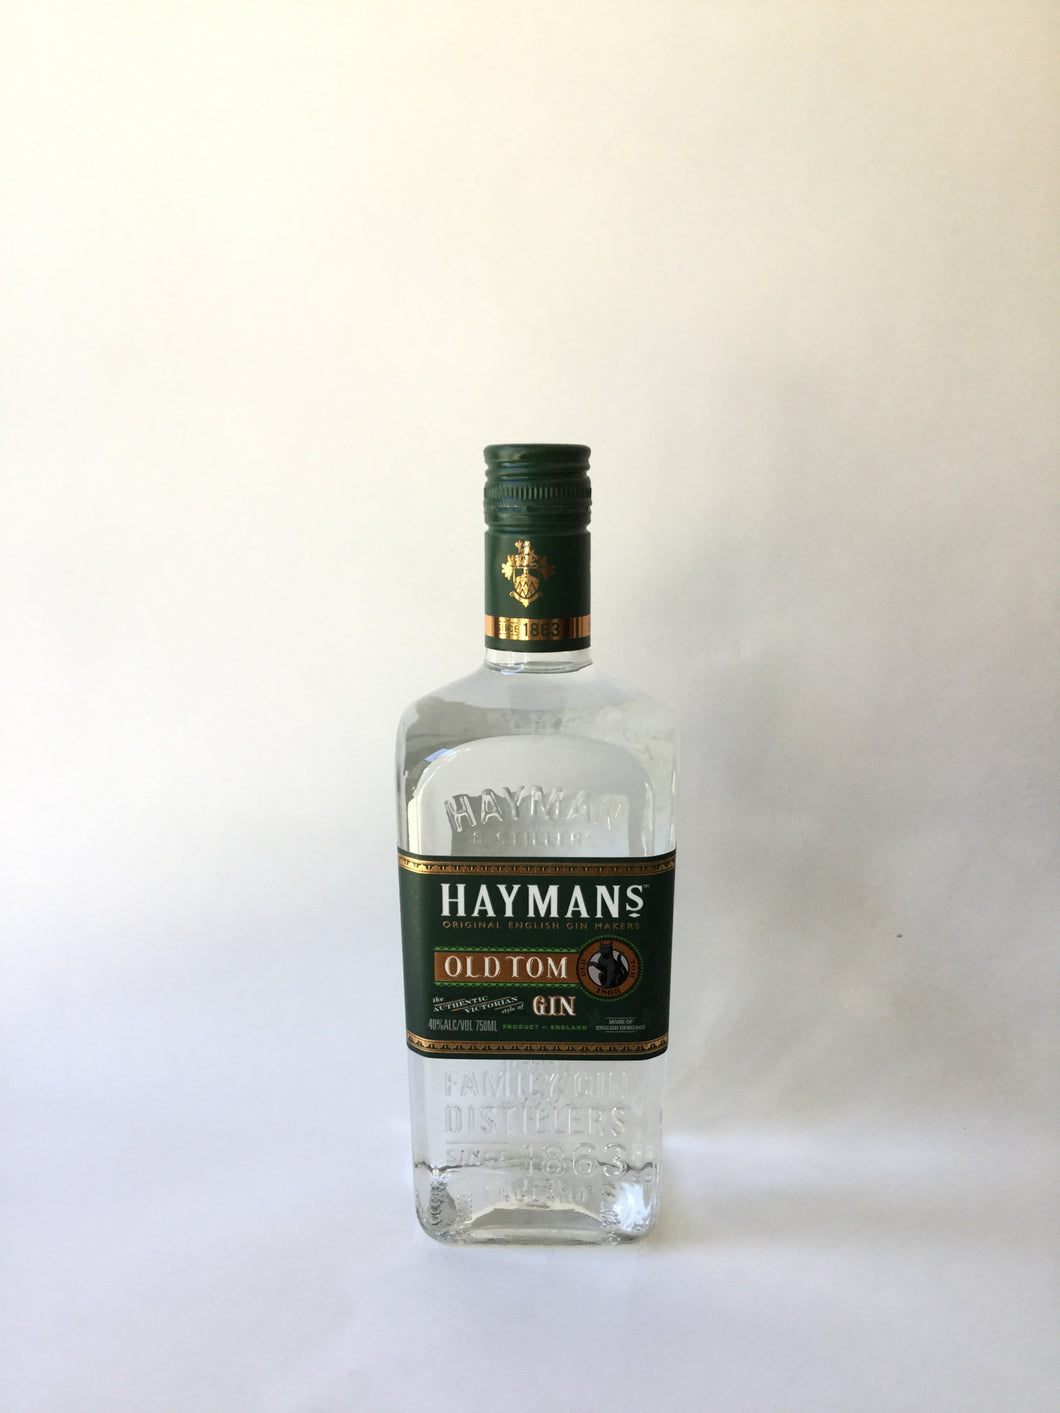 Hayman's Old Tom Gin, 750ml